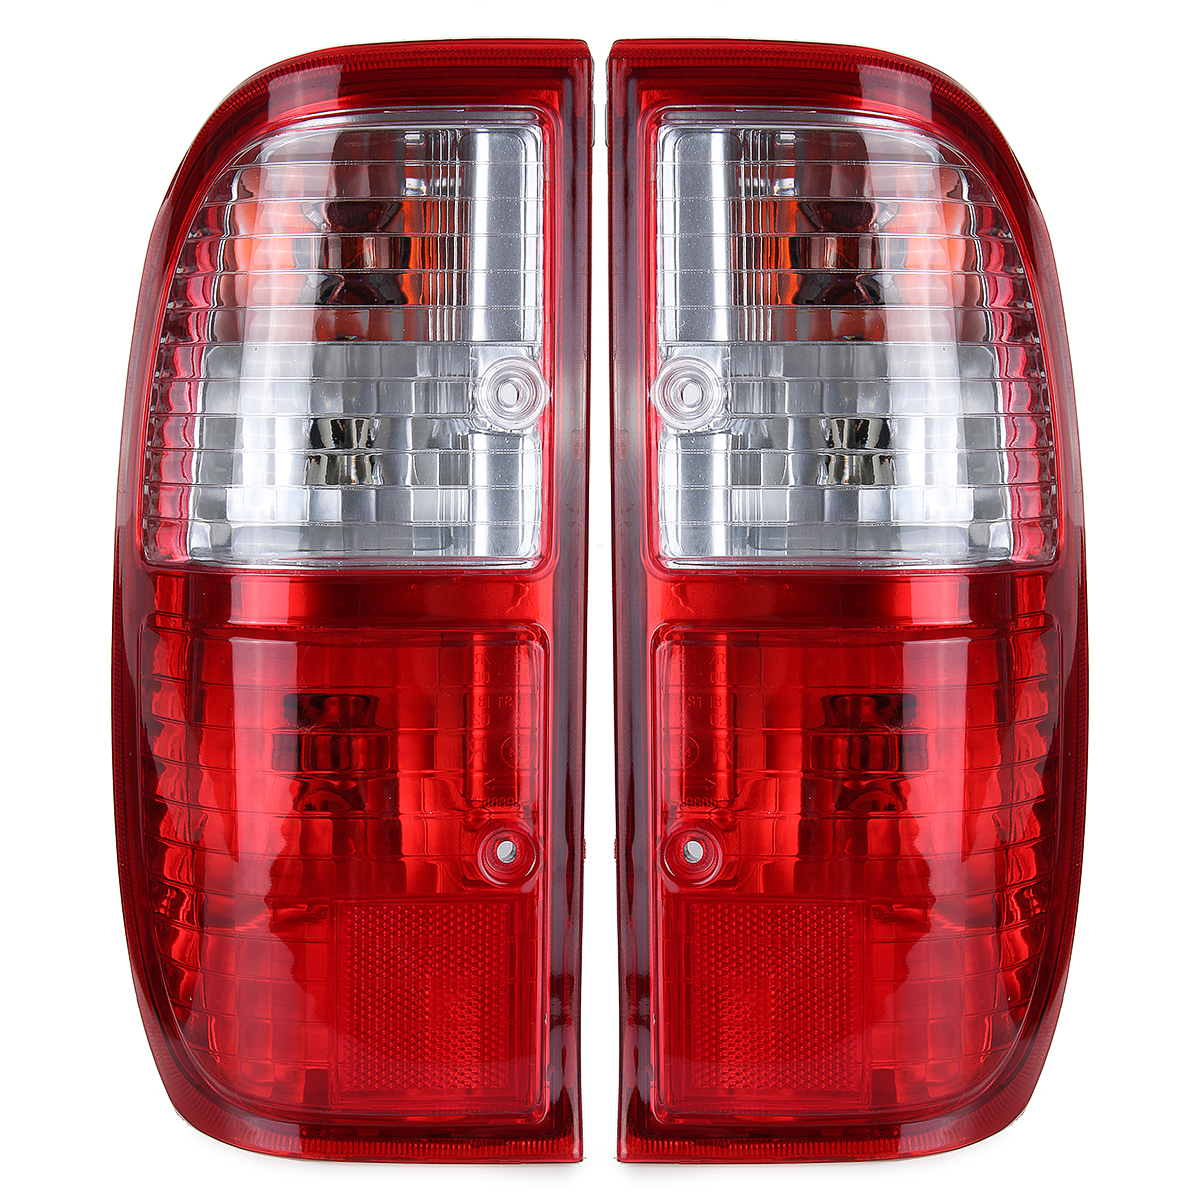 Car Rear Left/Right Tail Light Brake Lamp with Bulb and Wiring For Ford Ranger 1998 - 2006